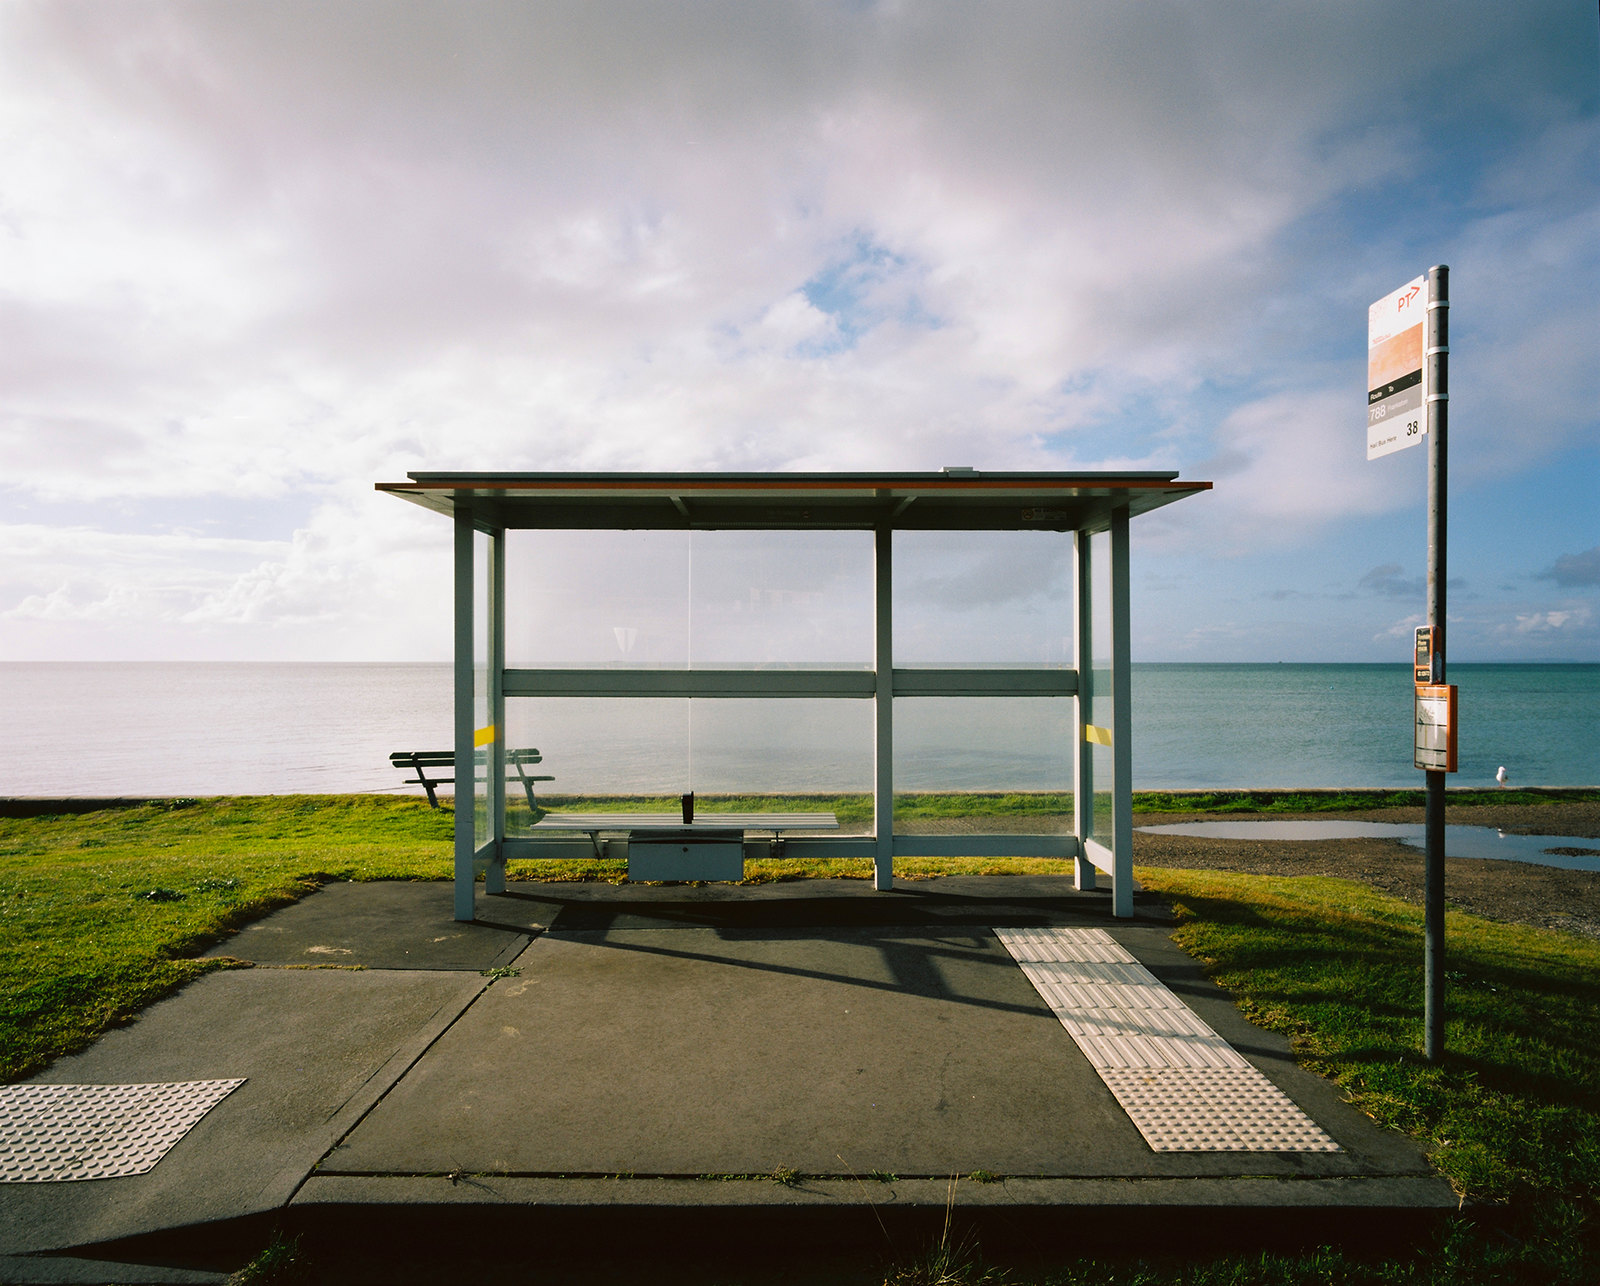 The Best Bus Stop in Australia